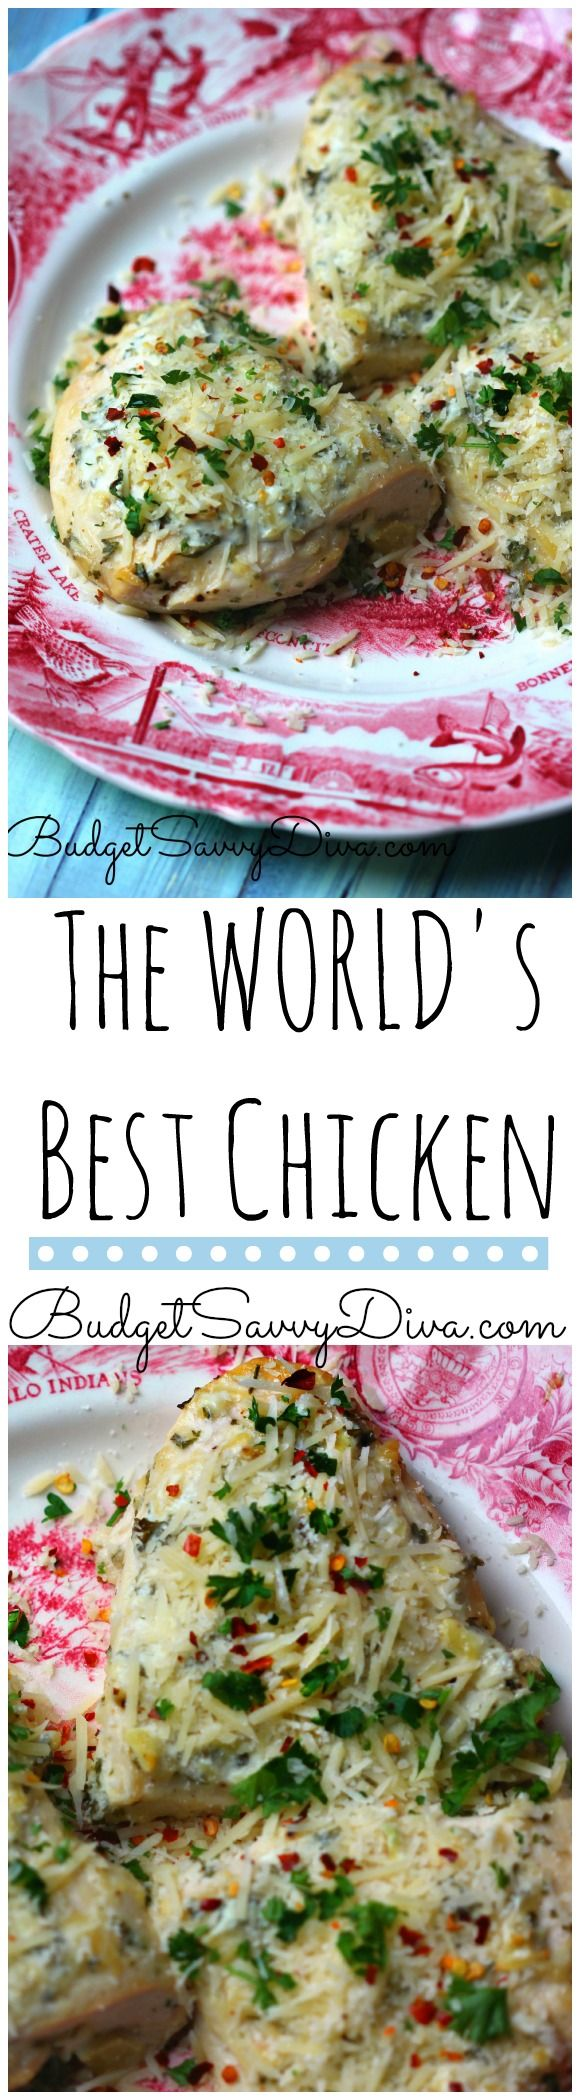 Best Chicken EVER! Perfect chicken to make dinner this week - Also it is gluten free - LOVE LOVE LOVE this recipe The World's Best Chicken Recipe